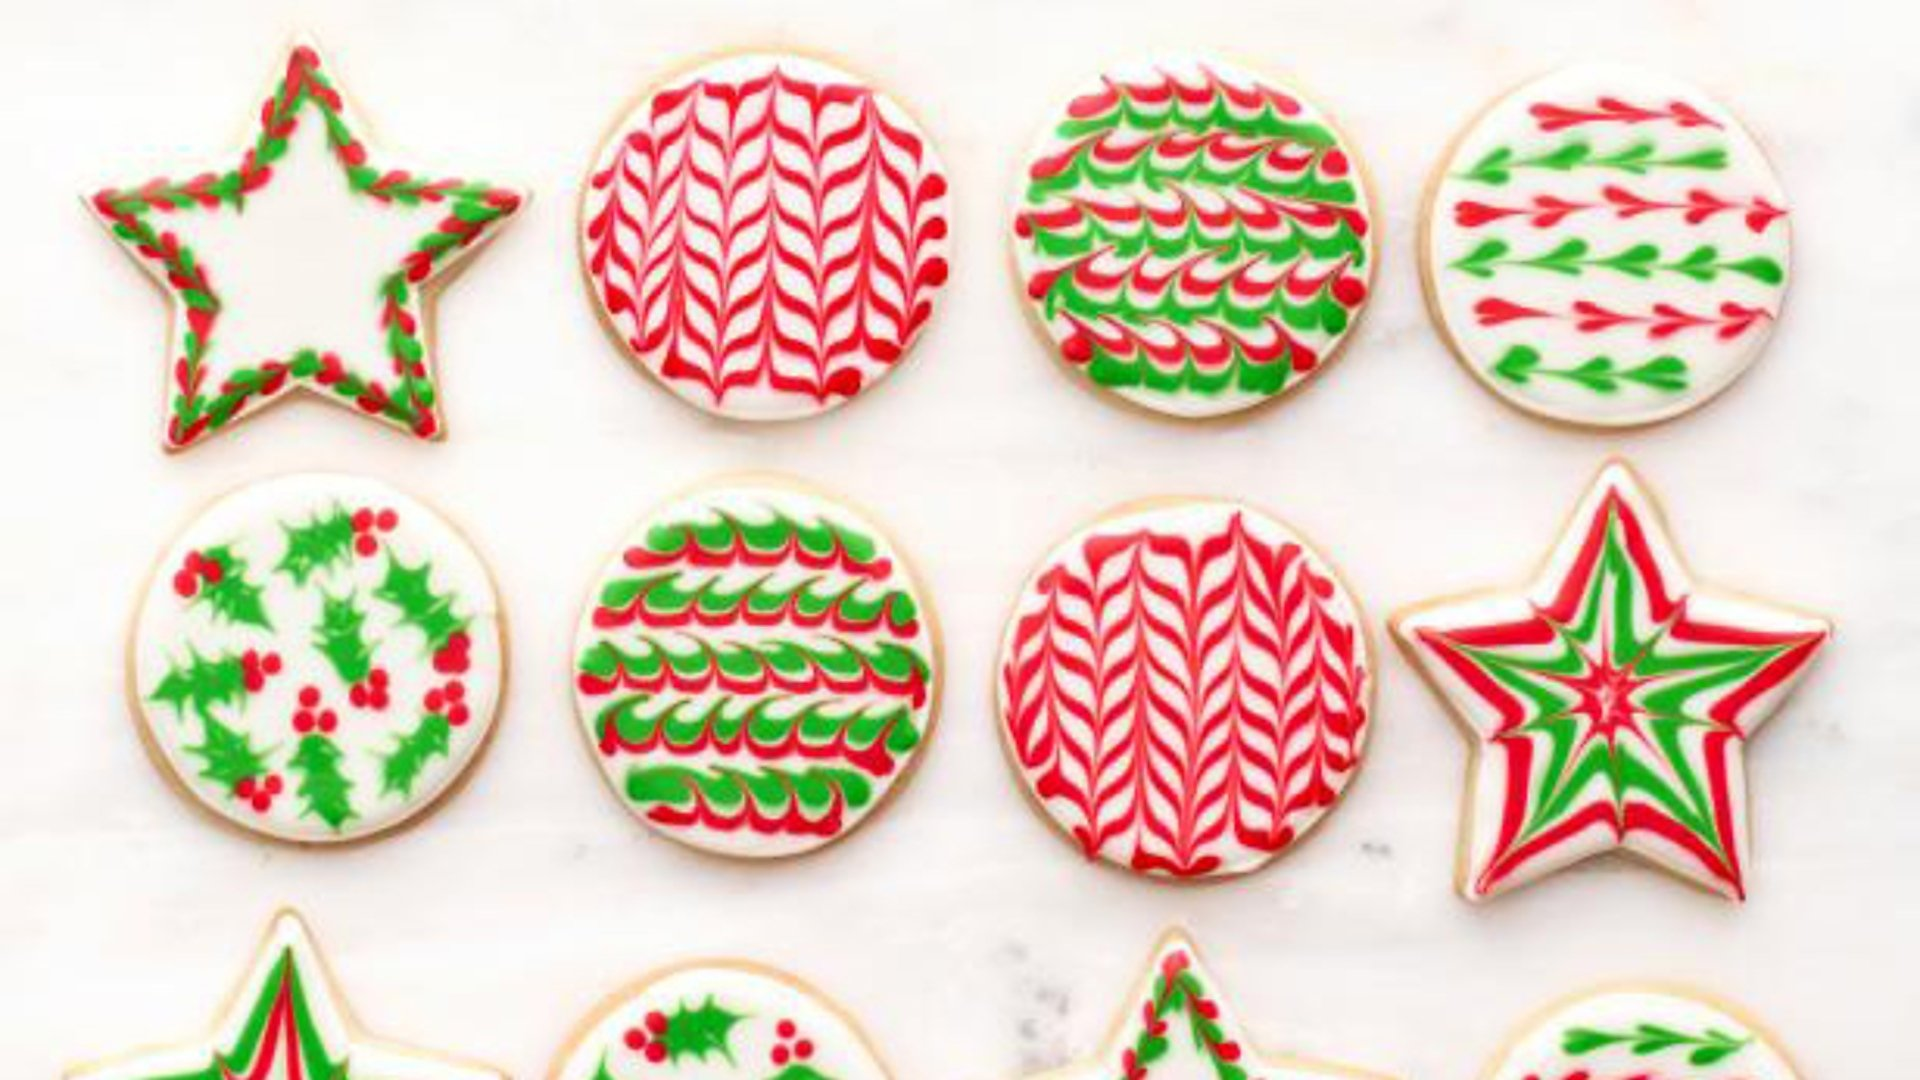 10 Ideal Christmas Sugar Cookie Decorating Ideas sugar cookies with royal icing food network 2020